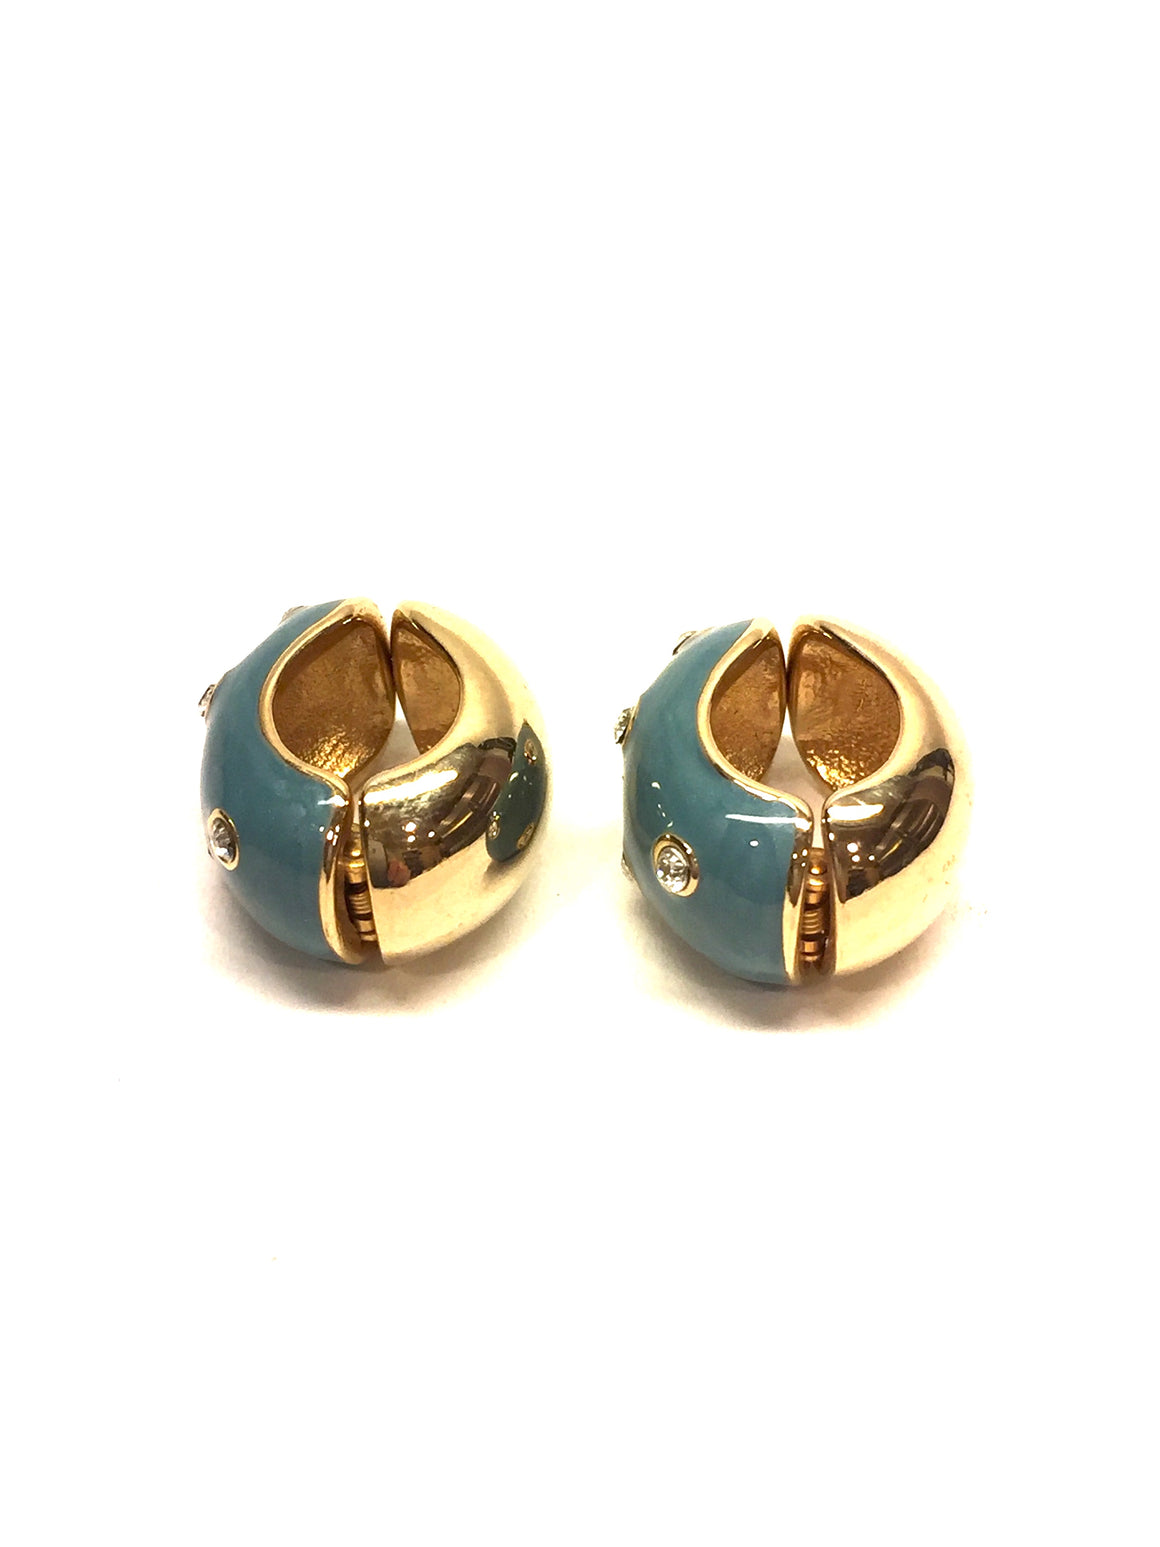 ERWIN PEARL Crystal-Studded Tiffany-Blue Enamel Reversible Hugies Clip-On Earrings